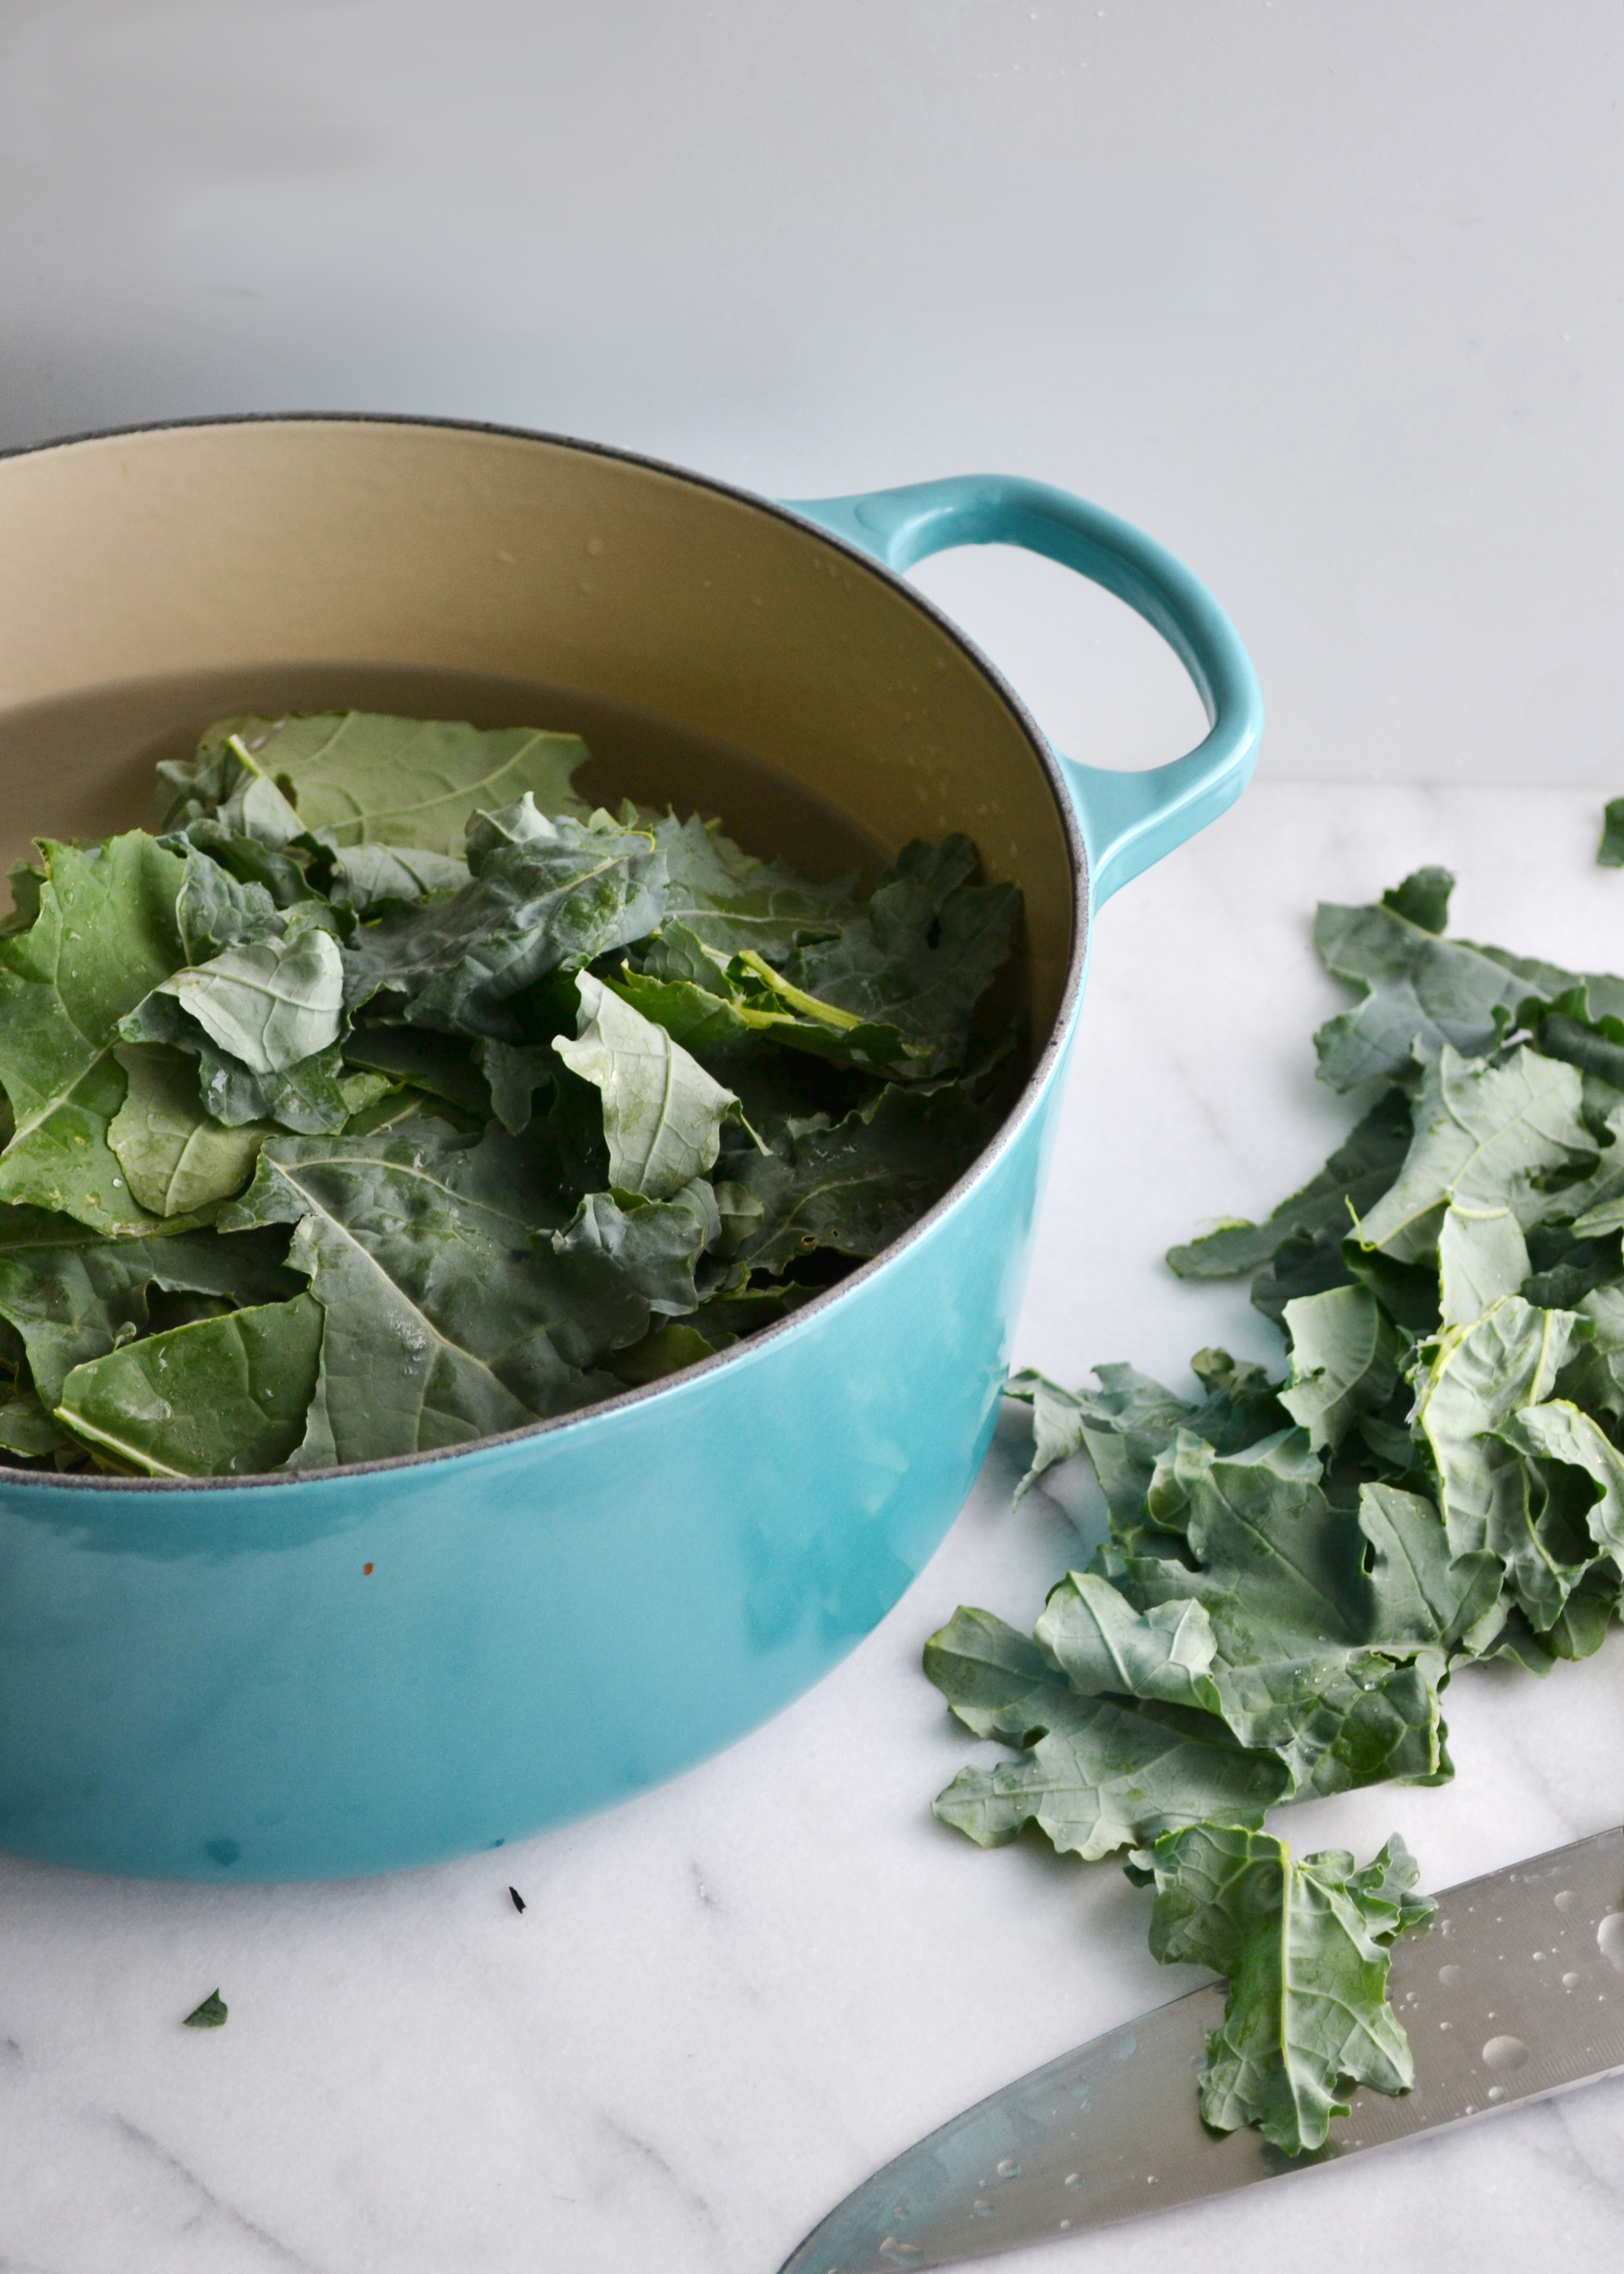 How to preserve kale (and other leafy greens), perfect for winter soups! From boxwoodavenue.com